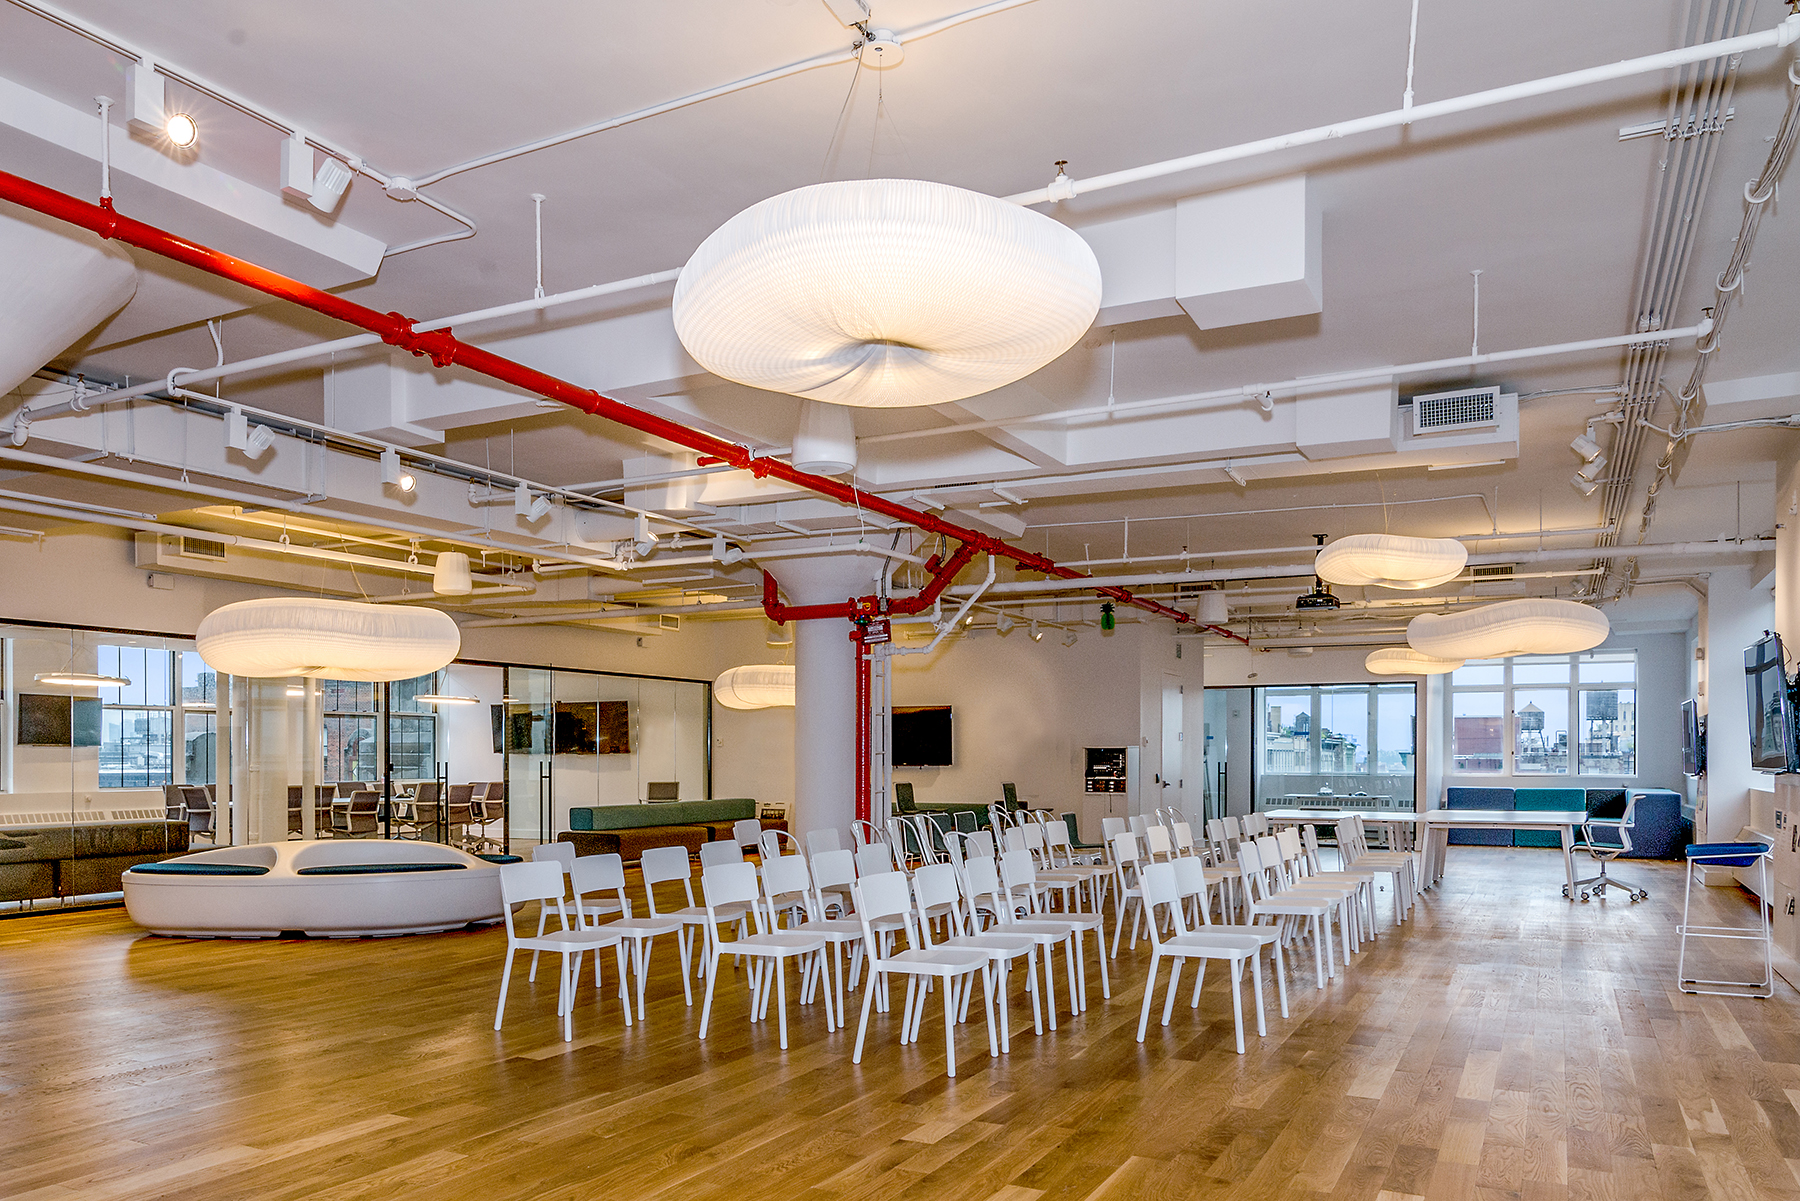 Learn about Grovo NYC's office renovation and build by Bluberry Builders, including recording studios, breakout spaces, kitchens, and a gym.